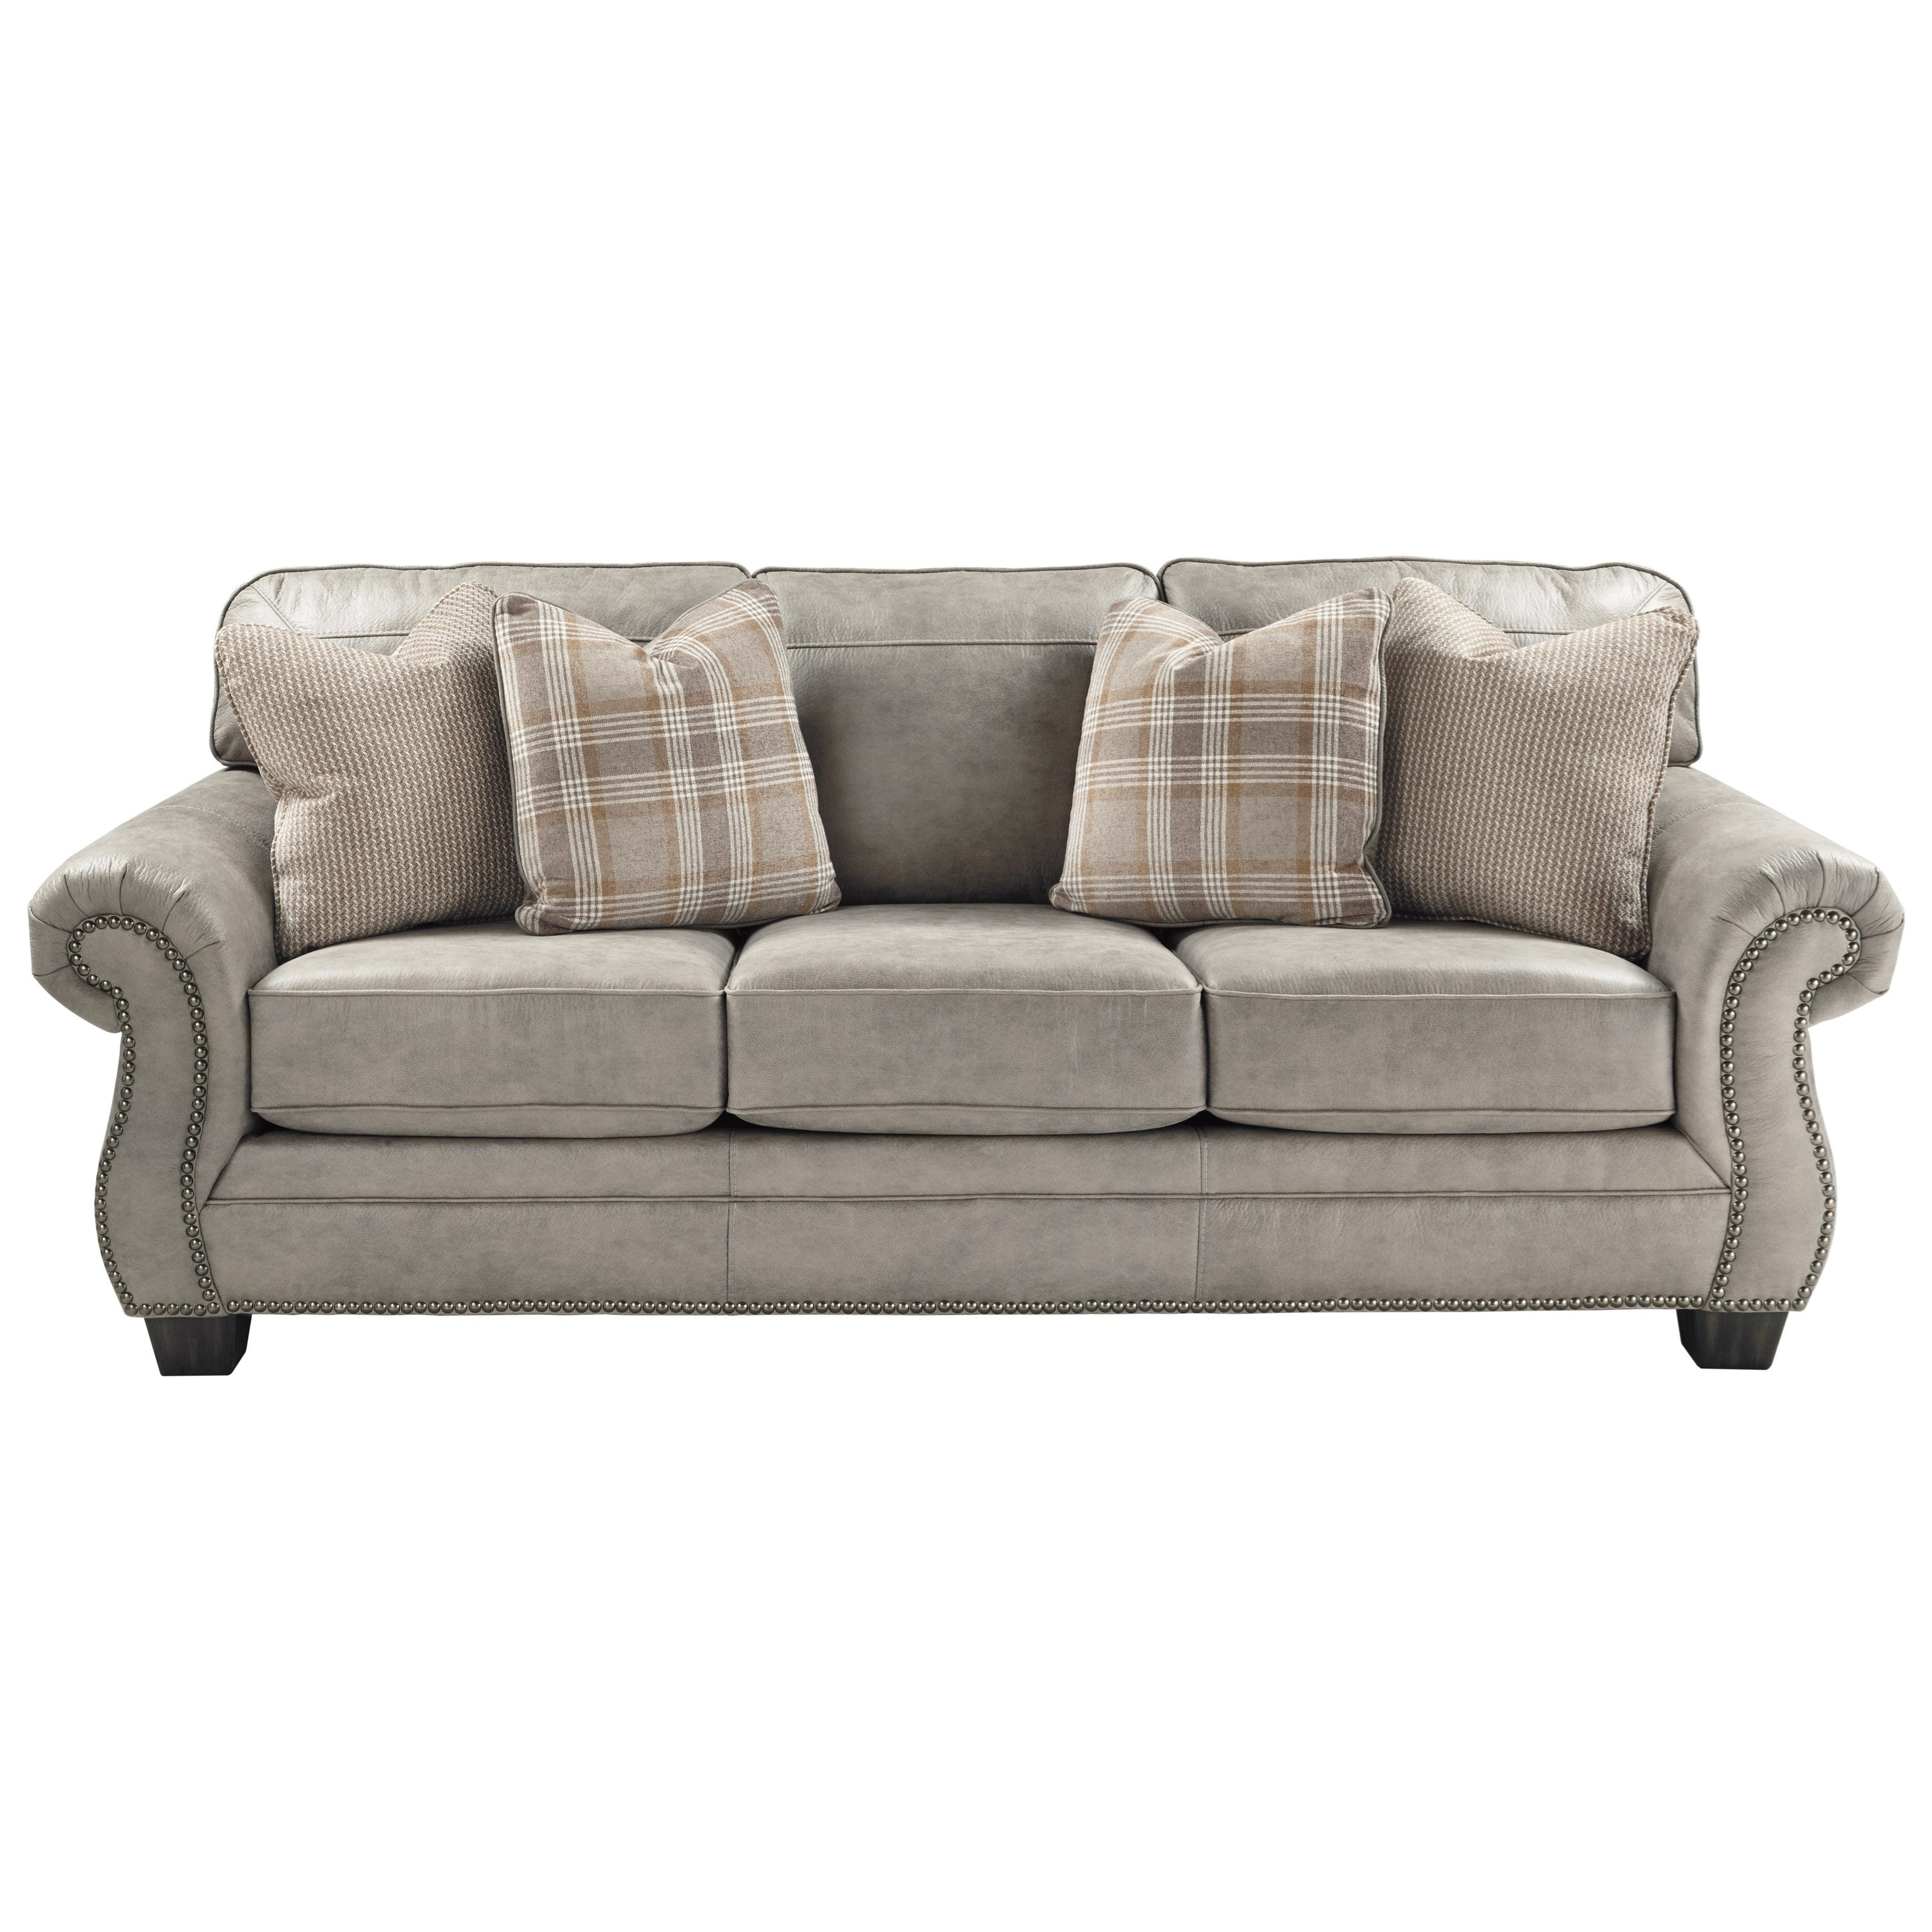 Queen Sofa Bed Ottoman Olsberg Transitional Queen Sofa Sleeper By Signature Design By Ashley At Royal Furniture